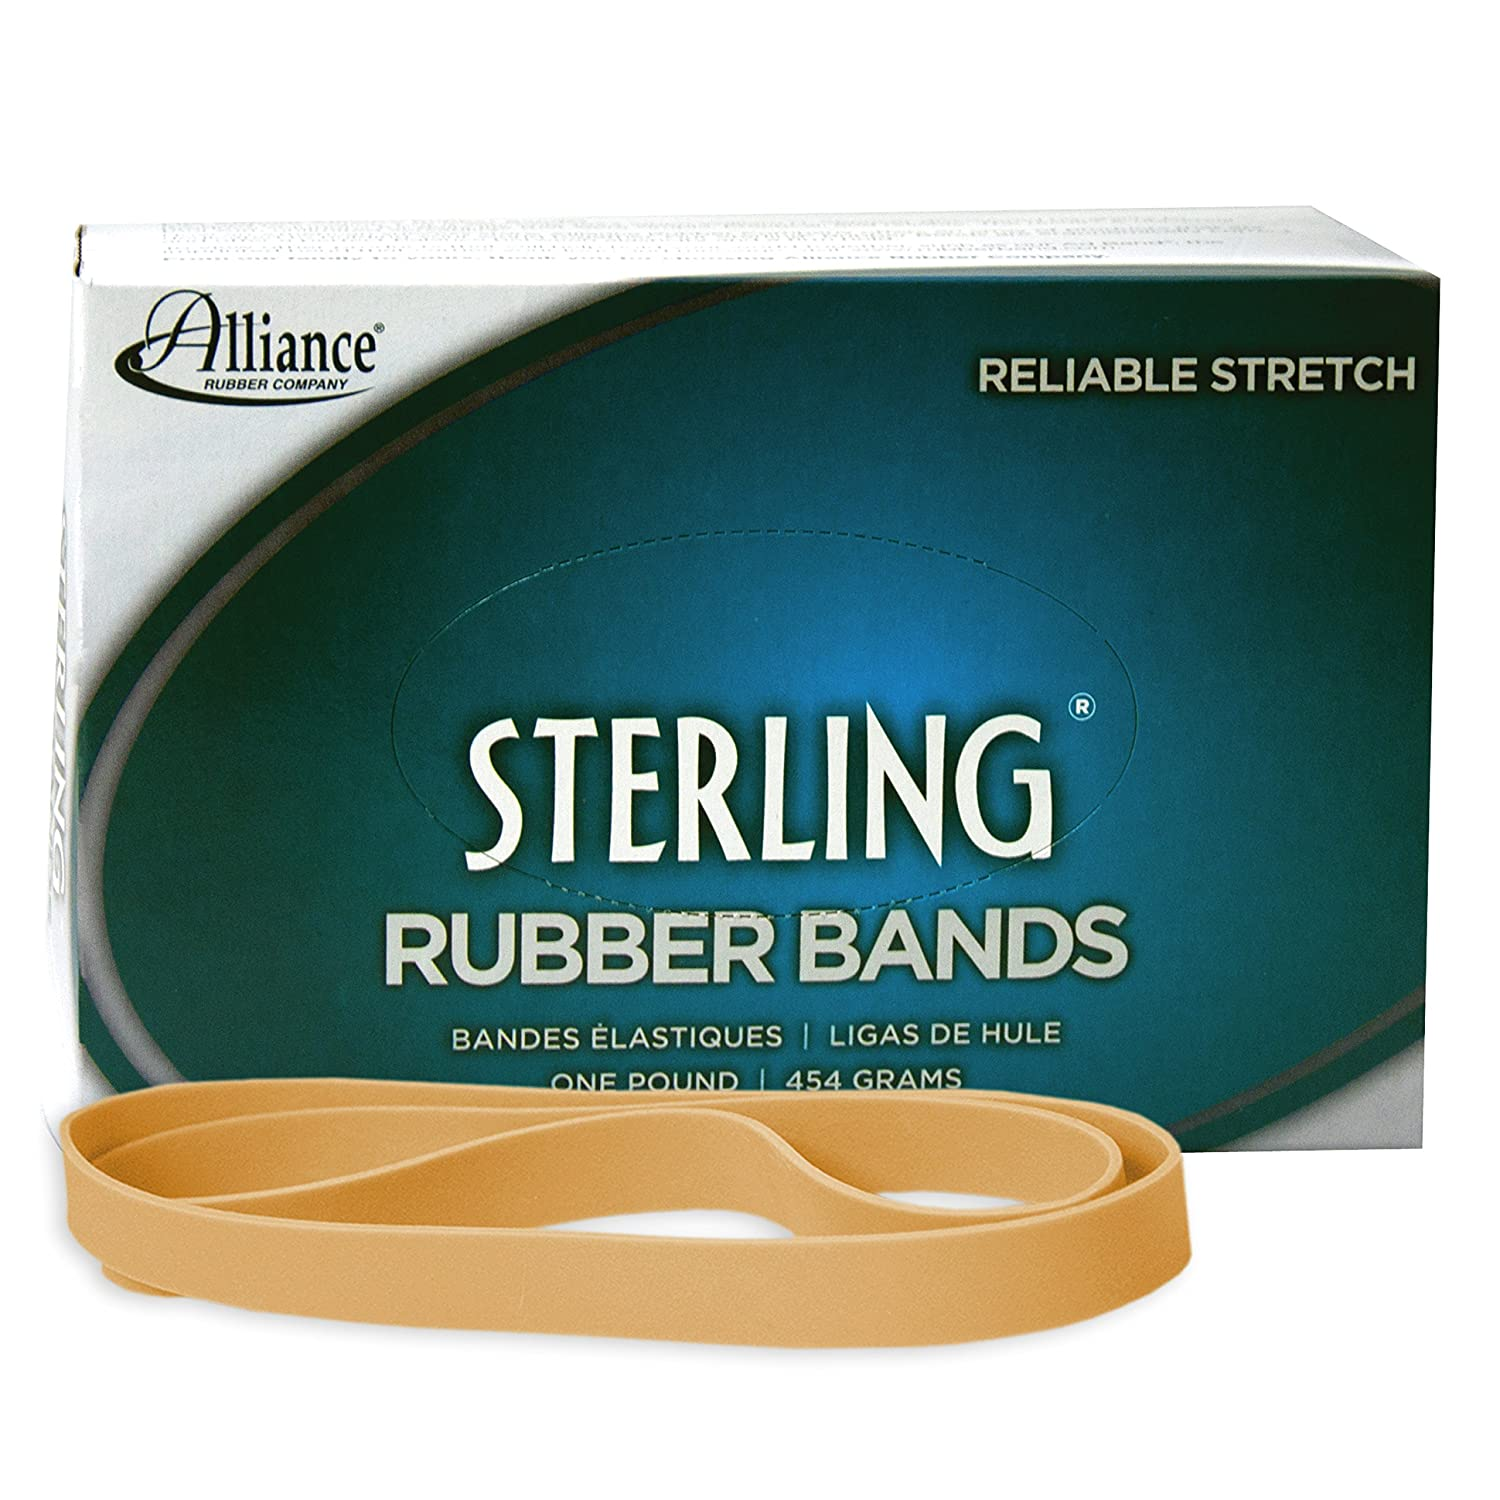 Alliance Sterling Rubber Band Size No.62 (2 1/2 x 1/4-Inch), 1 Pound Box (Approximately 600 Bands Per Pound) - 24625